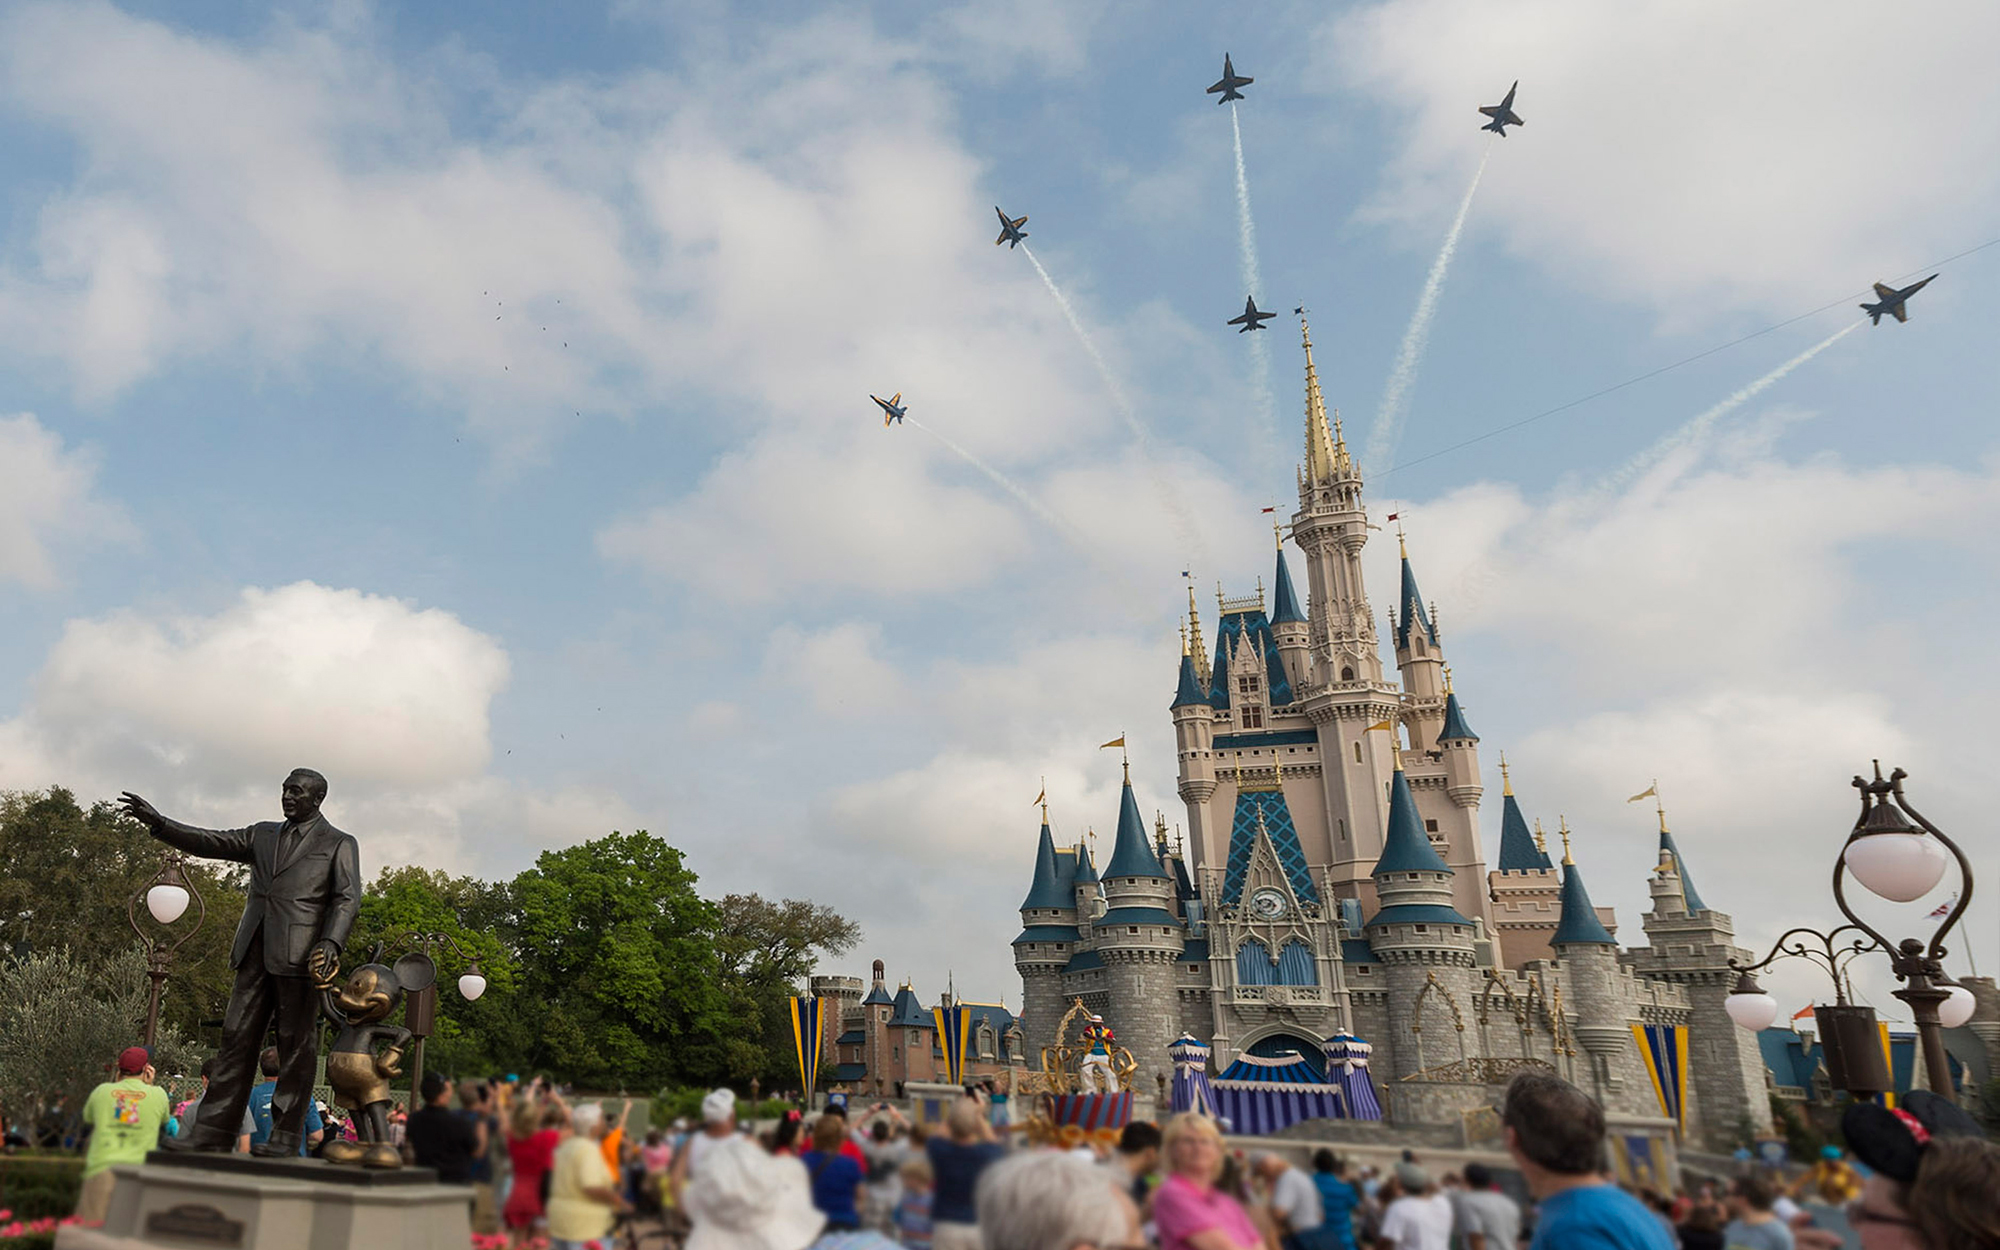 Delta is Offering Discounted Rooms and Free Food at Disney World